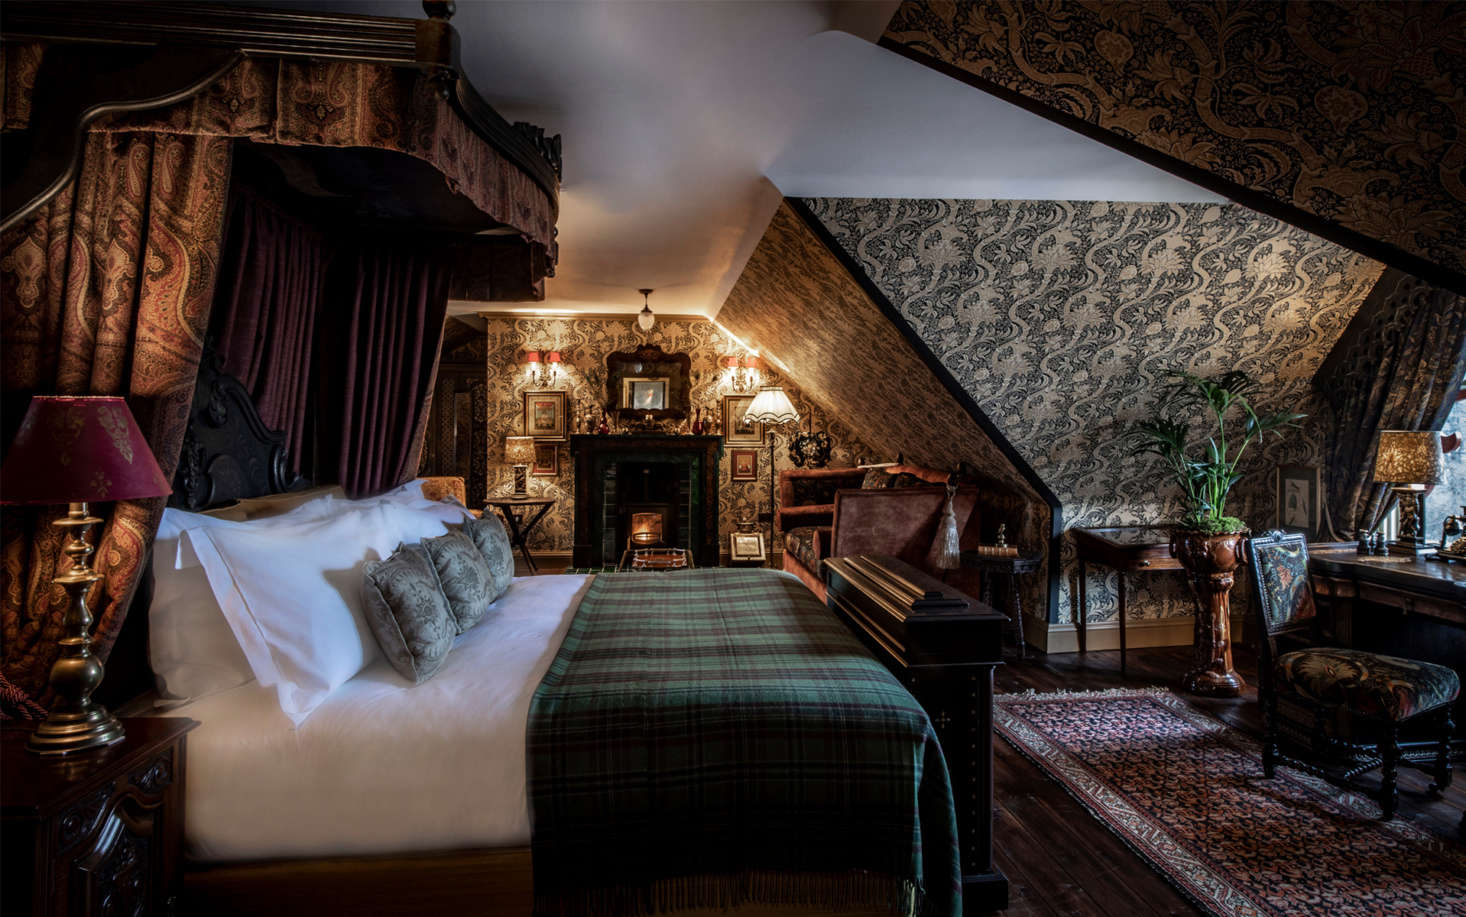 Another royal suite, done floor-to-ceiling in patterned wallpaper, with the requisite tartan blanket.